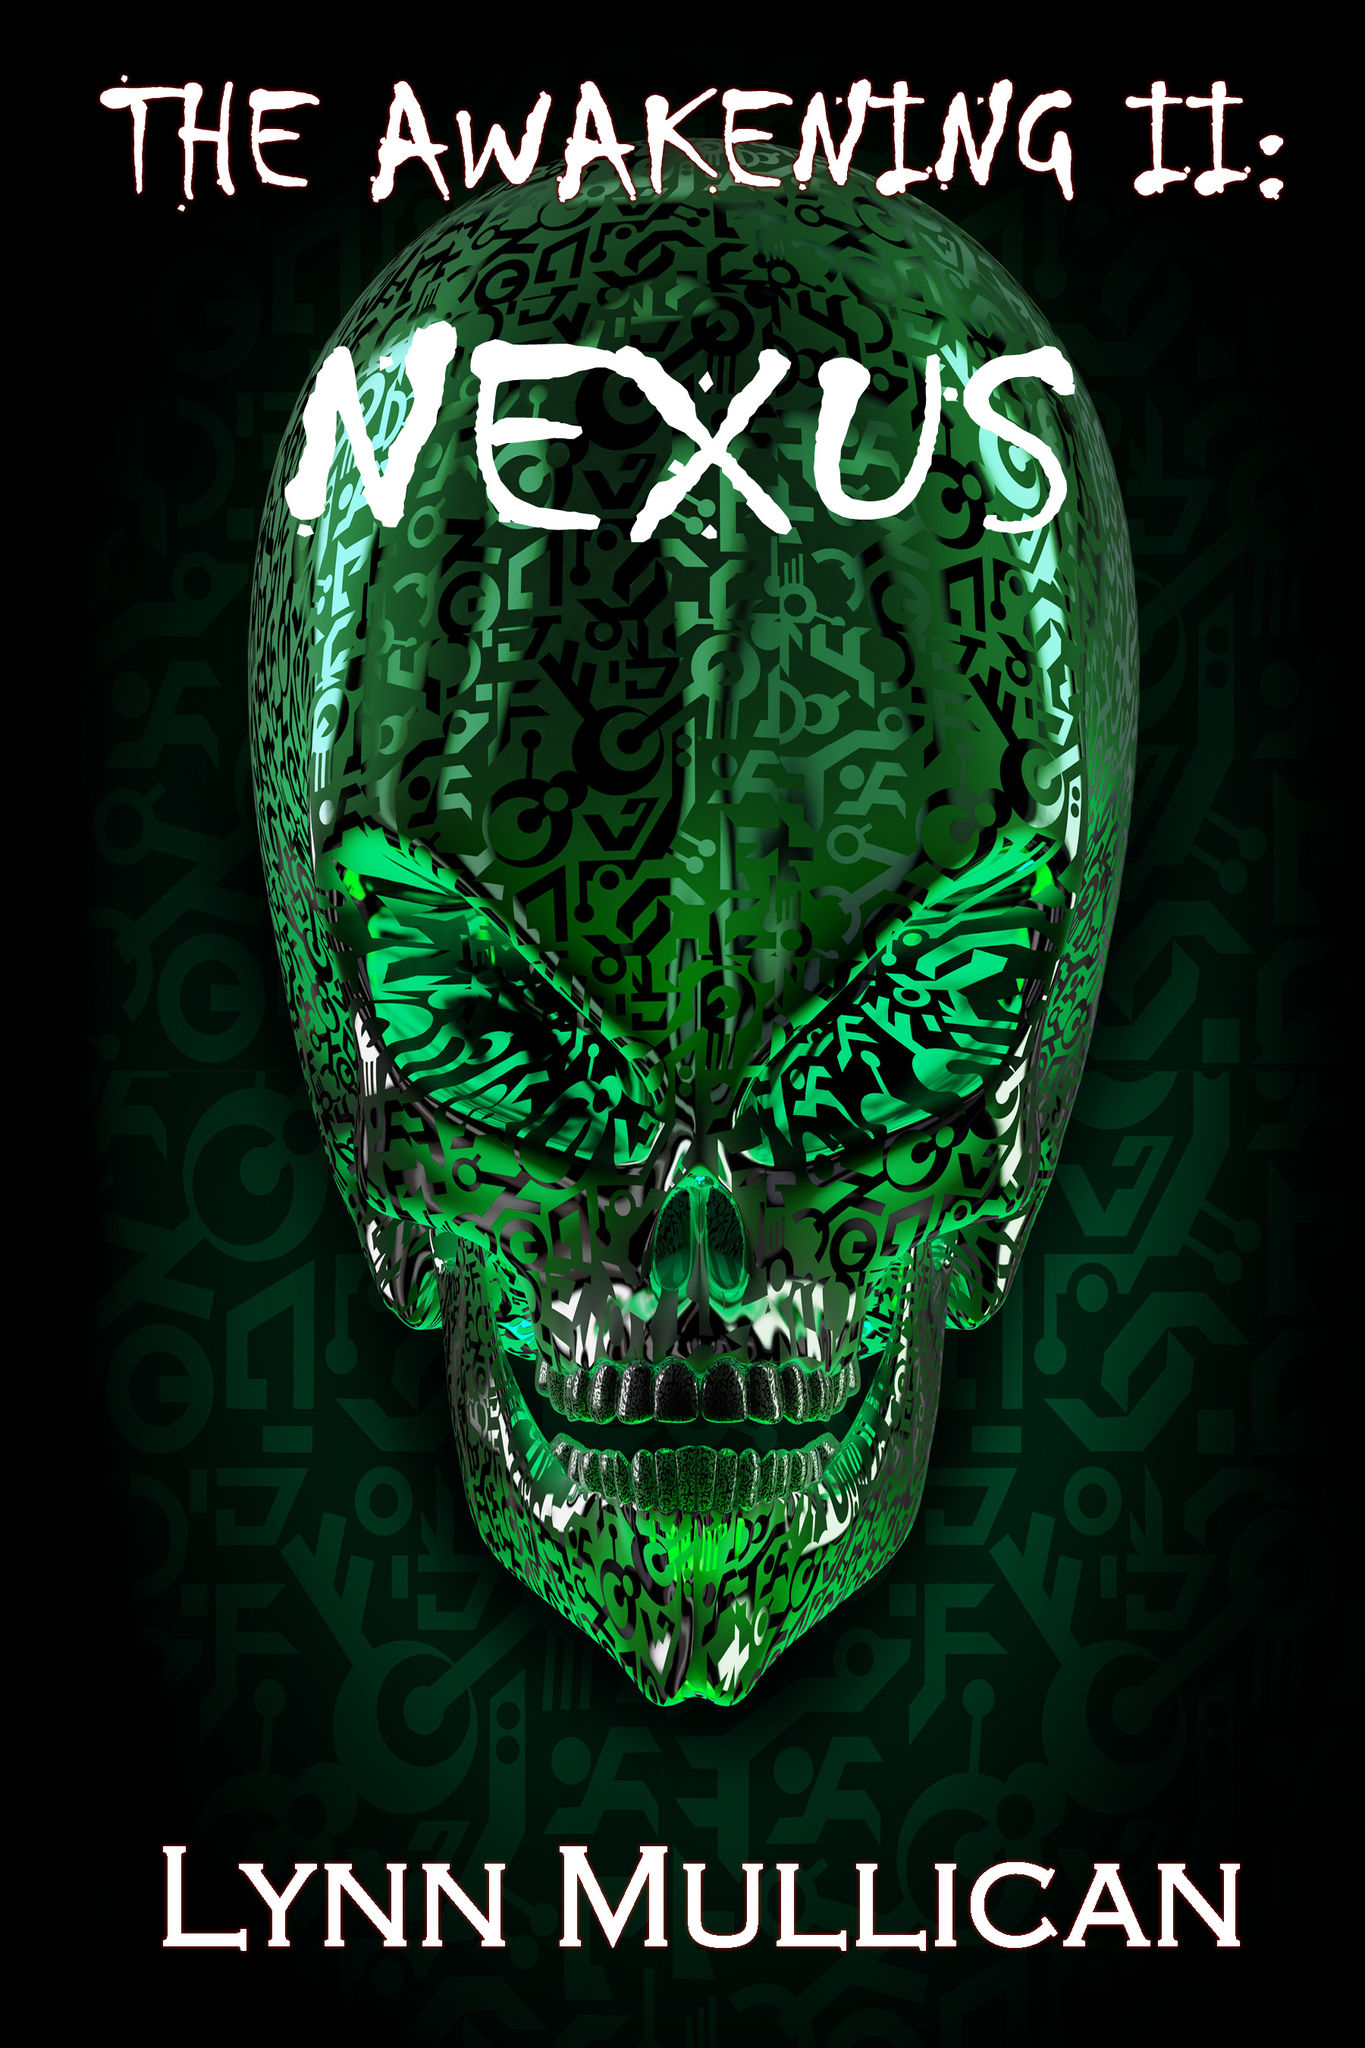 The Awakening II: Nexus